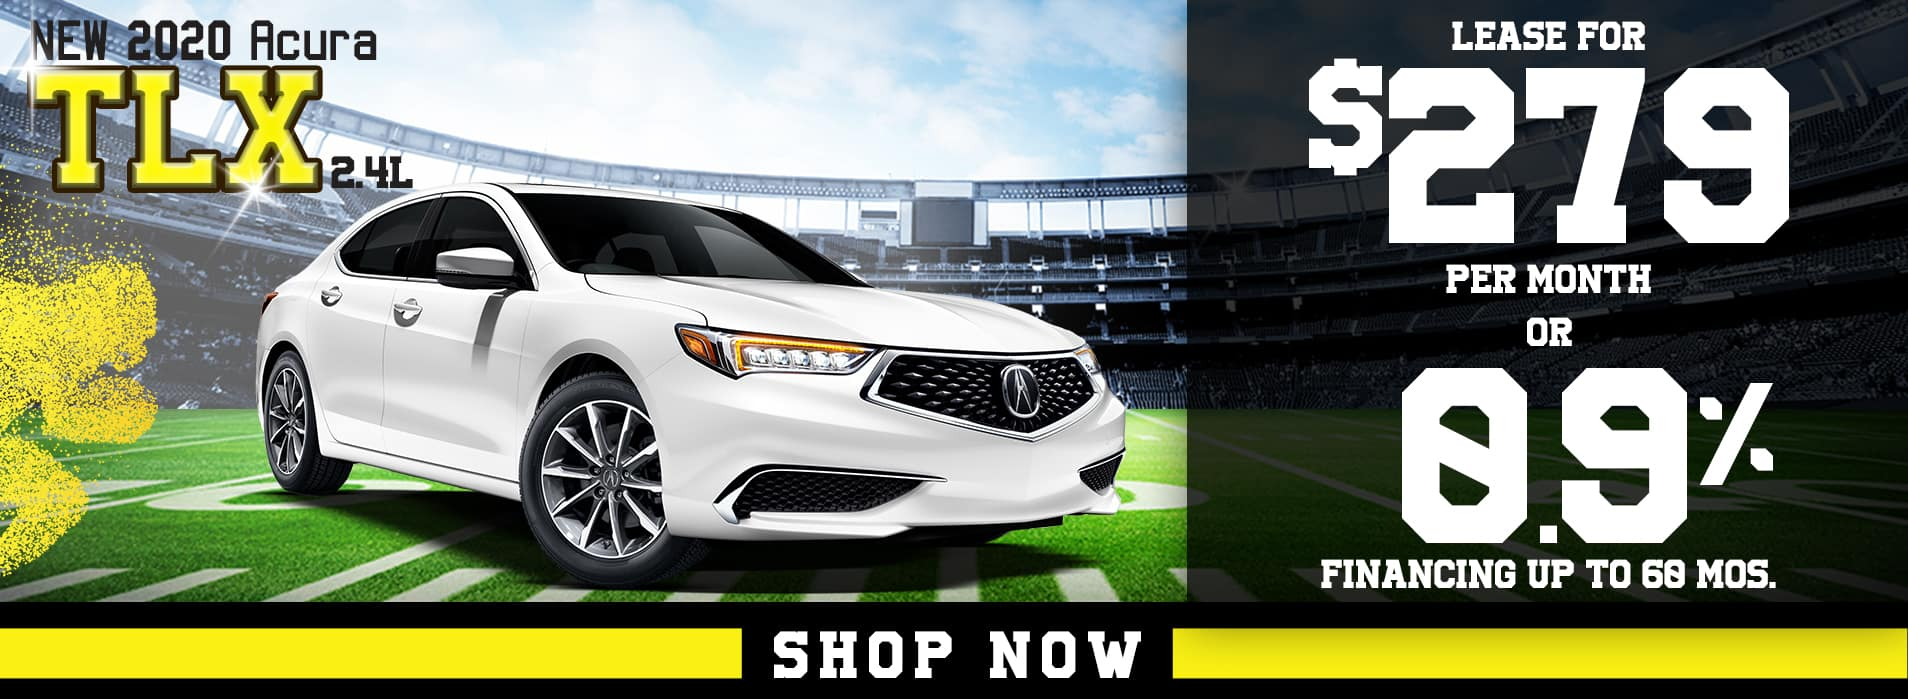 TLX | Lease for $279 per mo